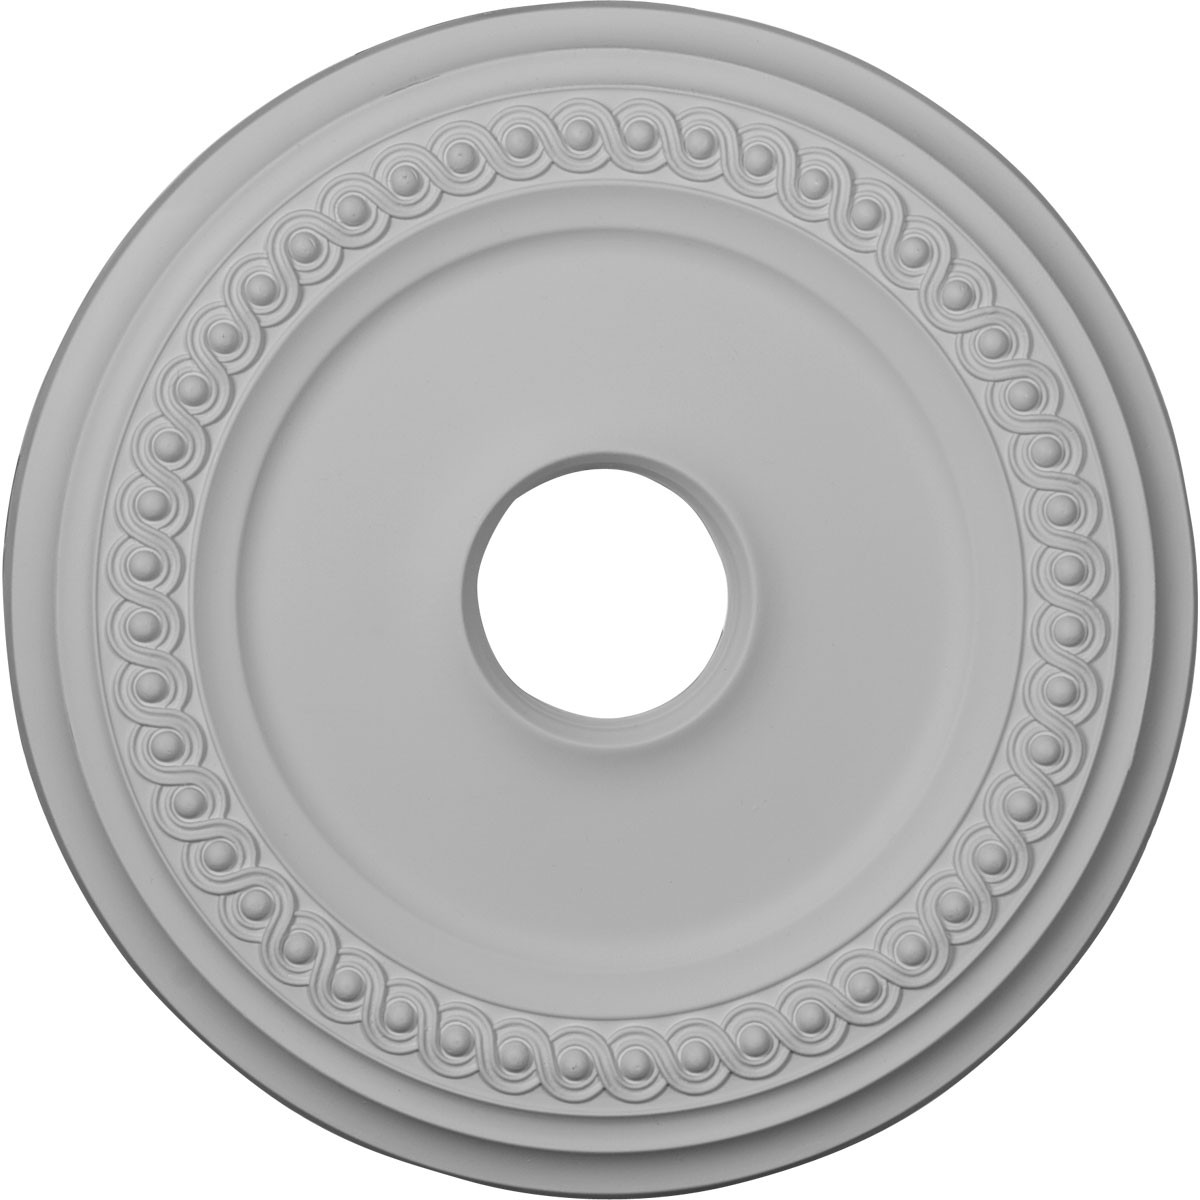 "EM-CM19CL - 18 5/8""OD 4""ID x 1 1/8""P Classic Ceiling Medallion (Fits Canopies up to 12 3/4"")"